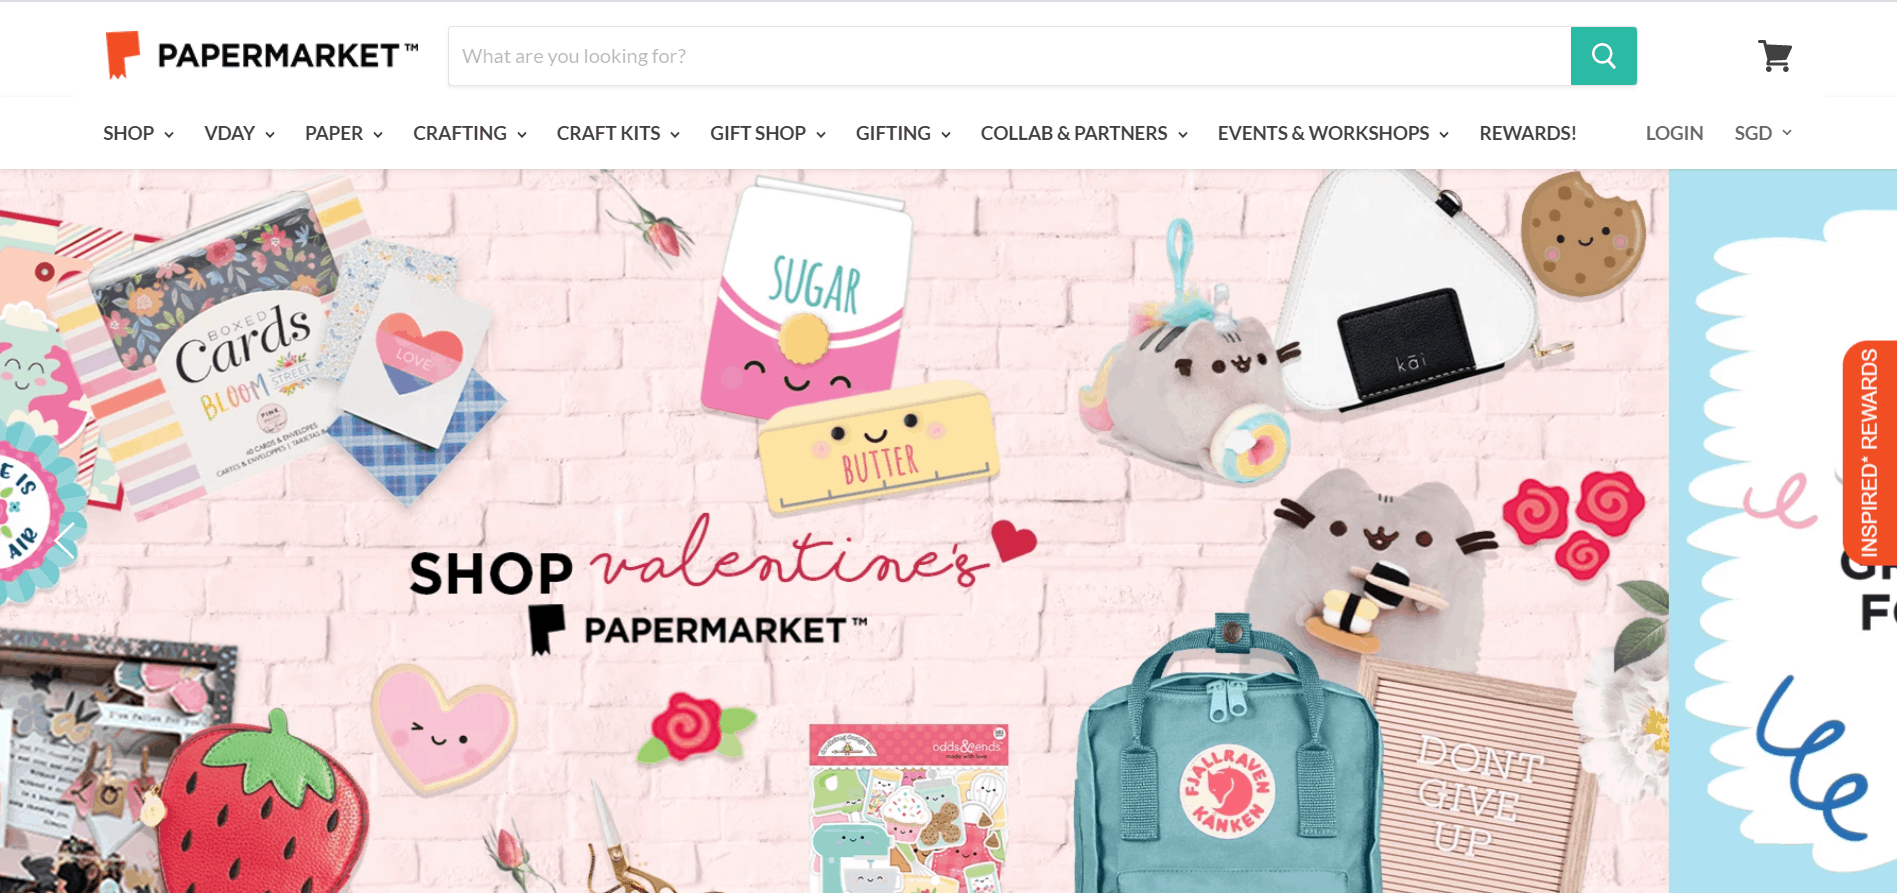 PaperMarket is top 10 online Stationery Shops in Singapore, Best Online Craft Kits, Gifts & Stationery Store,papermarket reddit,papermark singapore,papermarket instagram,papermarket workshop,paper shop singapore,online craft store singapore,art paper singapore,paper market price